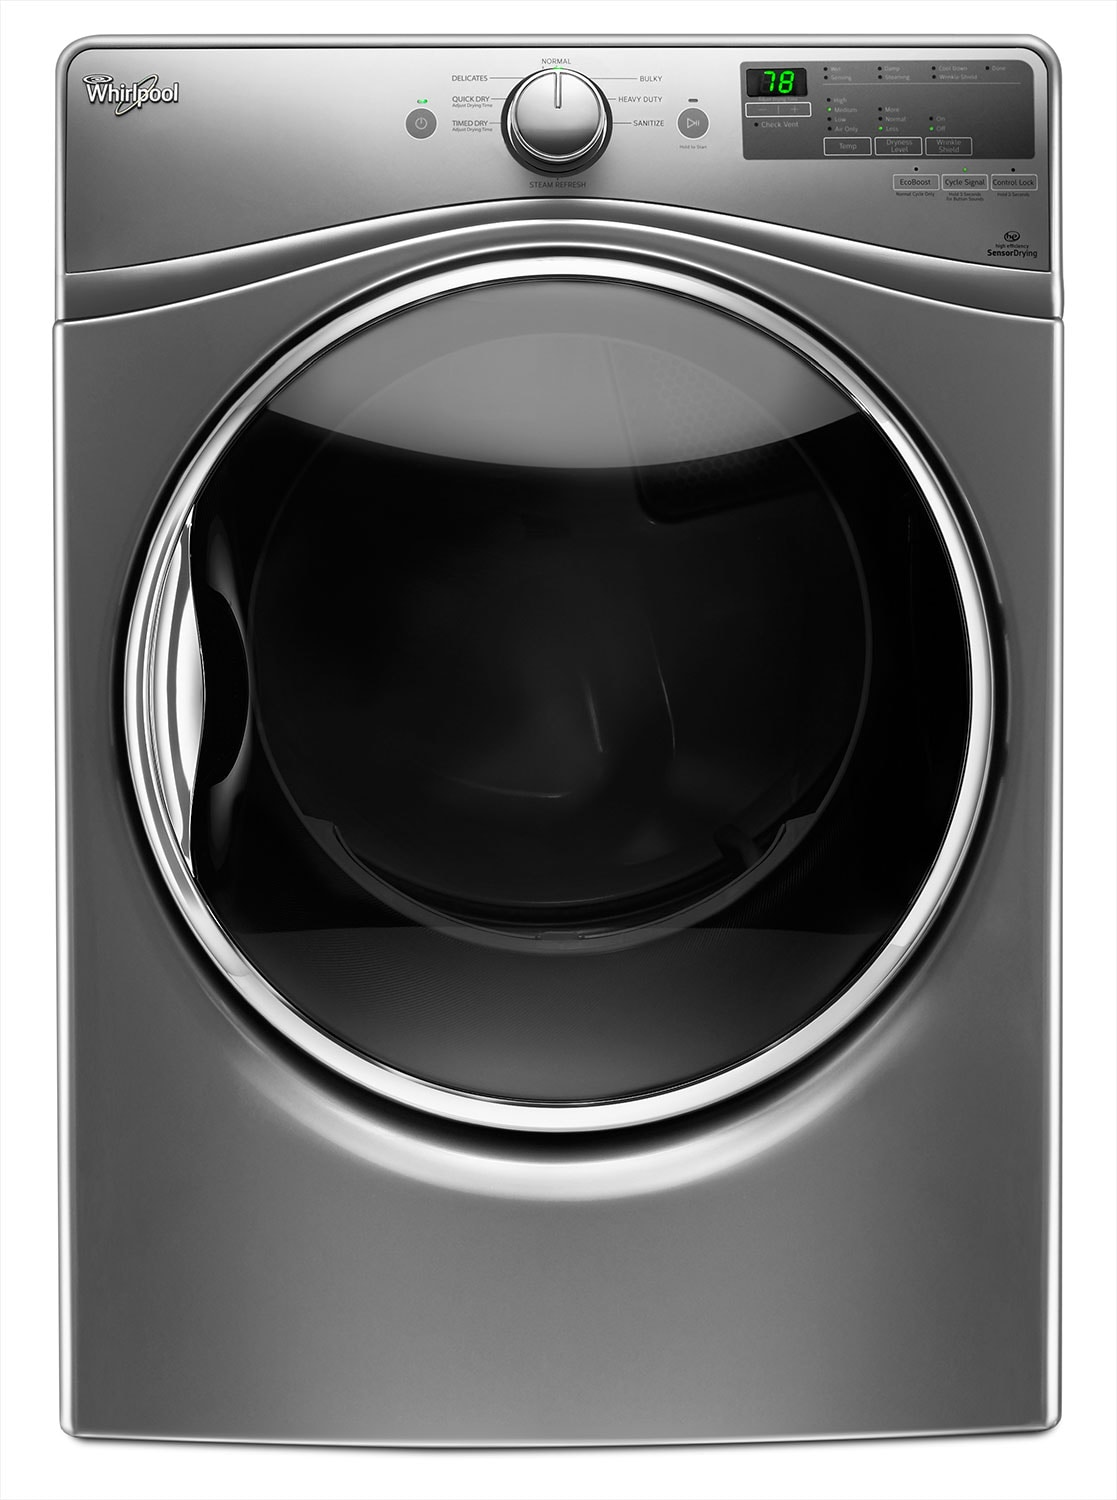 Washers and Dryers - Whirlpool Chrome Shadow Gas Dryer (7.4 Cu. Ft.) - WGD85HEFC